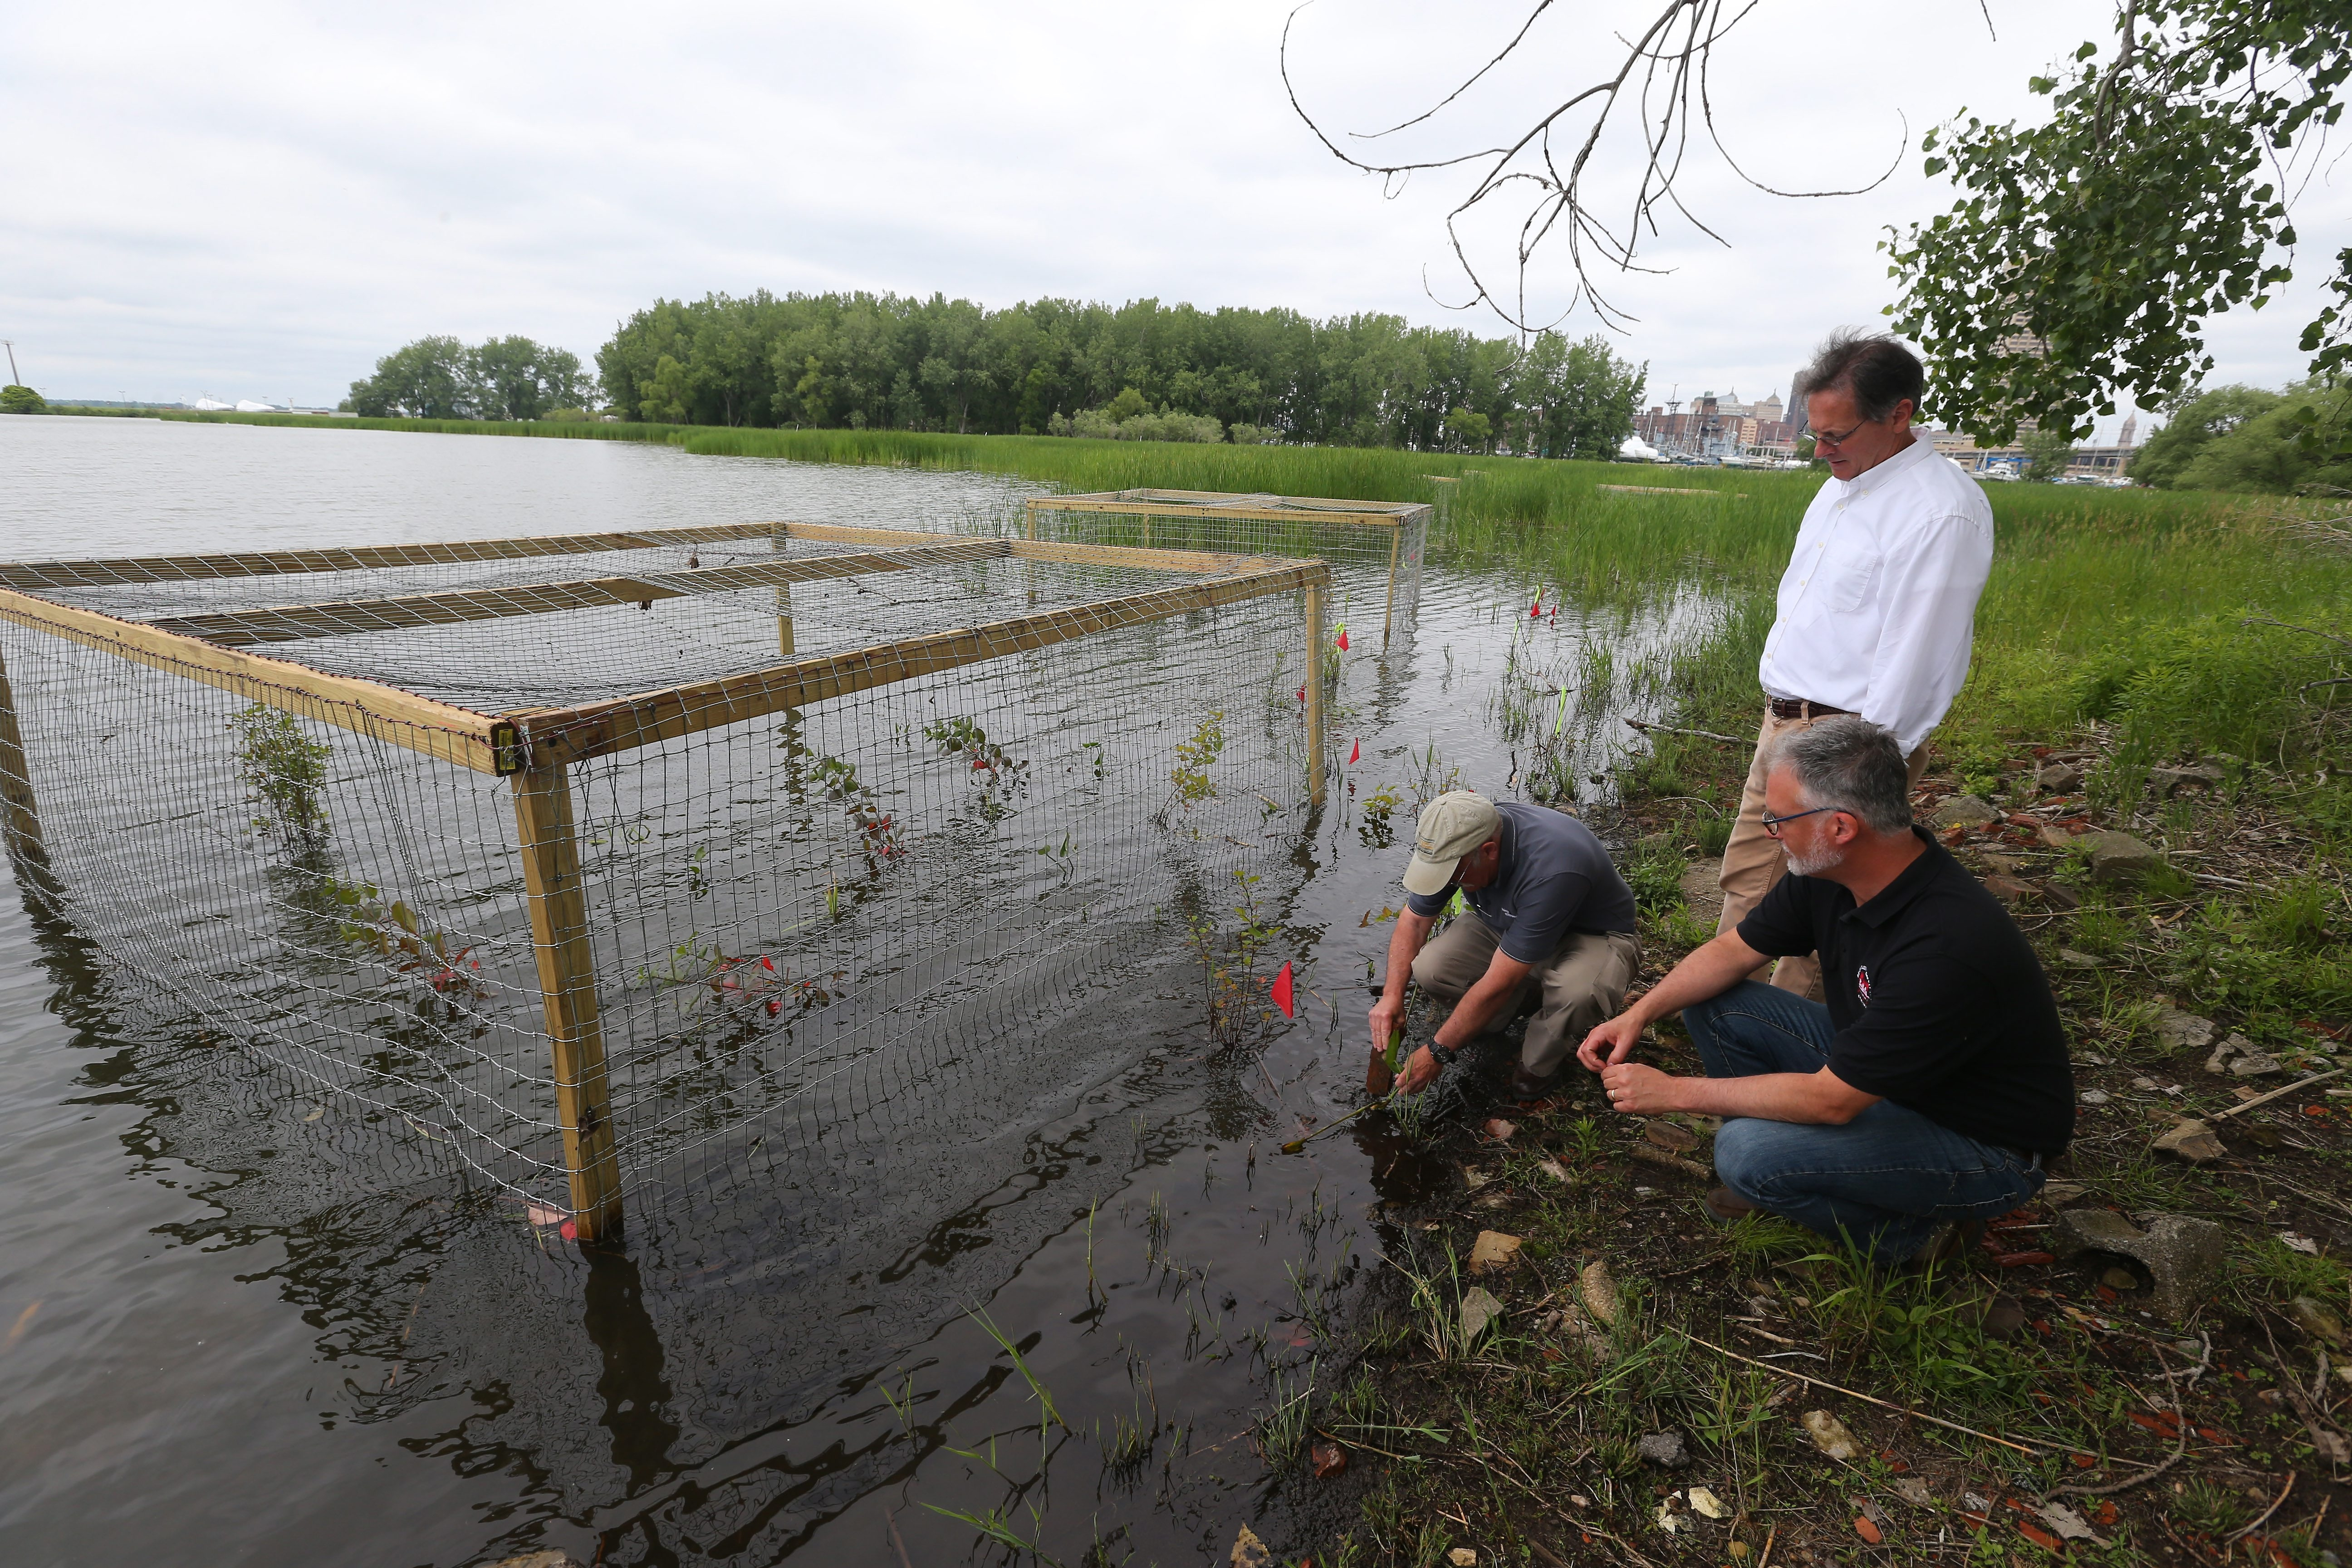 Paul Fuhrmann, left, and Kris Erickson, center, of Ecology and Environment, Inc., work with Craig Forgette, right, of the U.S. Army Corps of Engineers to check on the plants they have placed at Times Beach Nature Preserve. The preserve is serving as a model for other states.